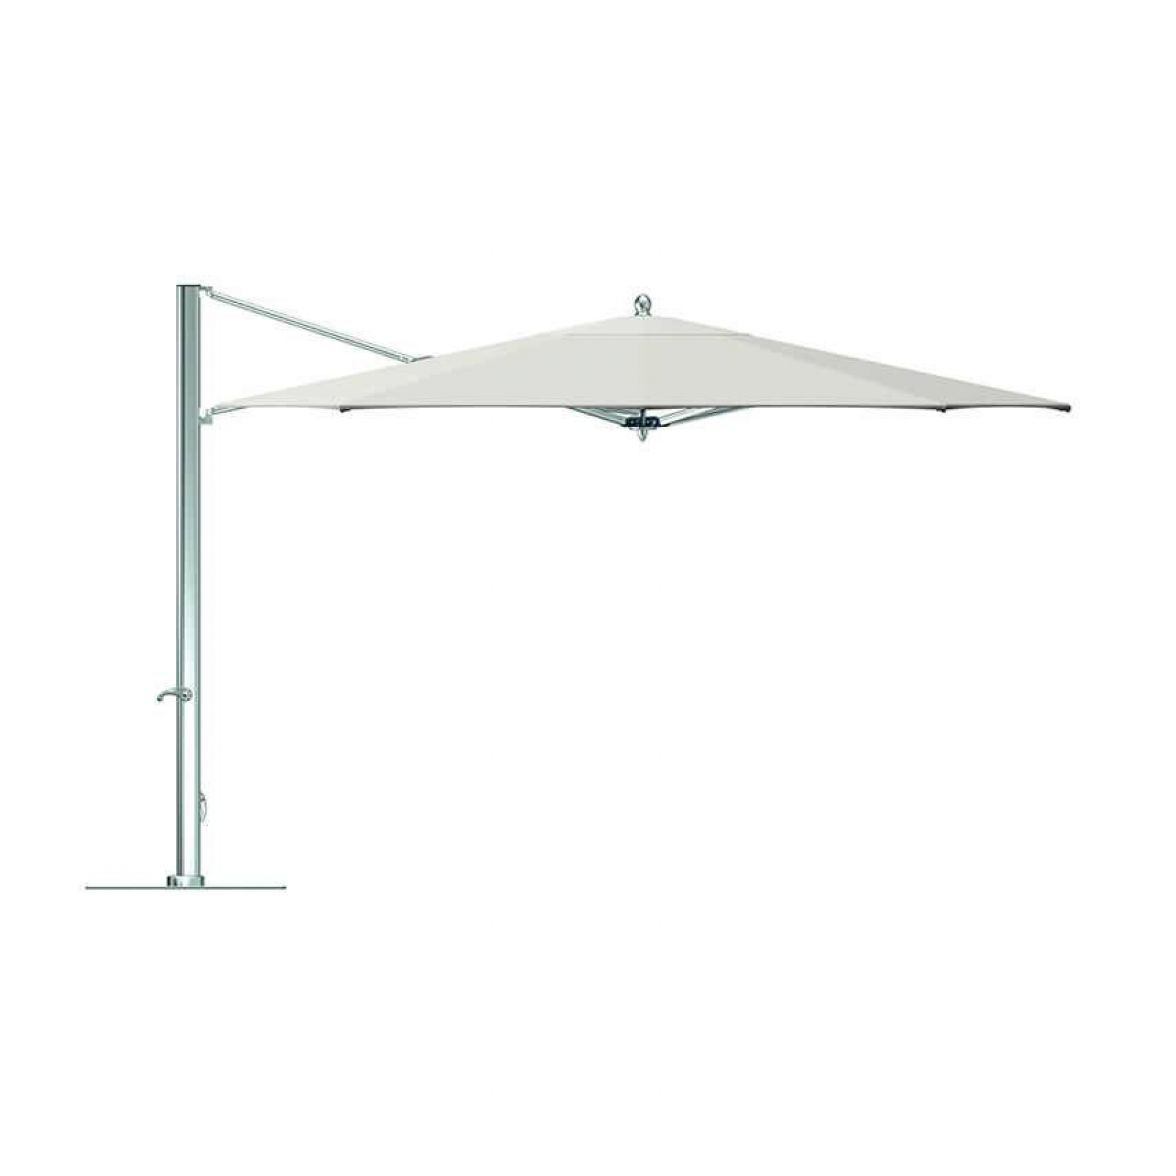 Single Cantilever master Max umbrella фото цена